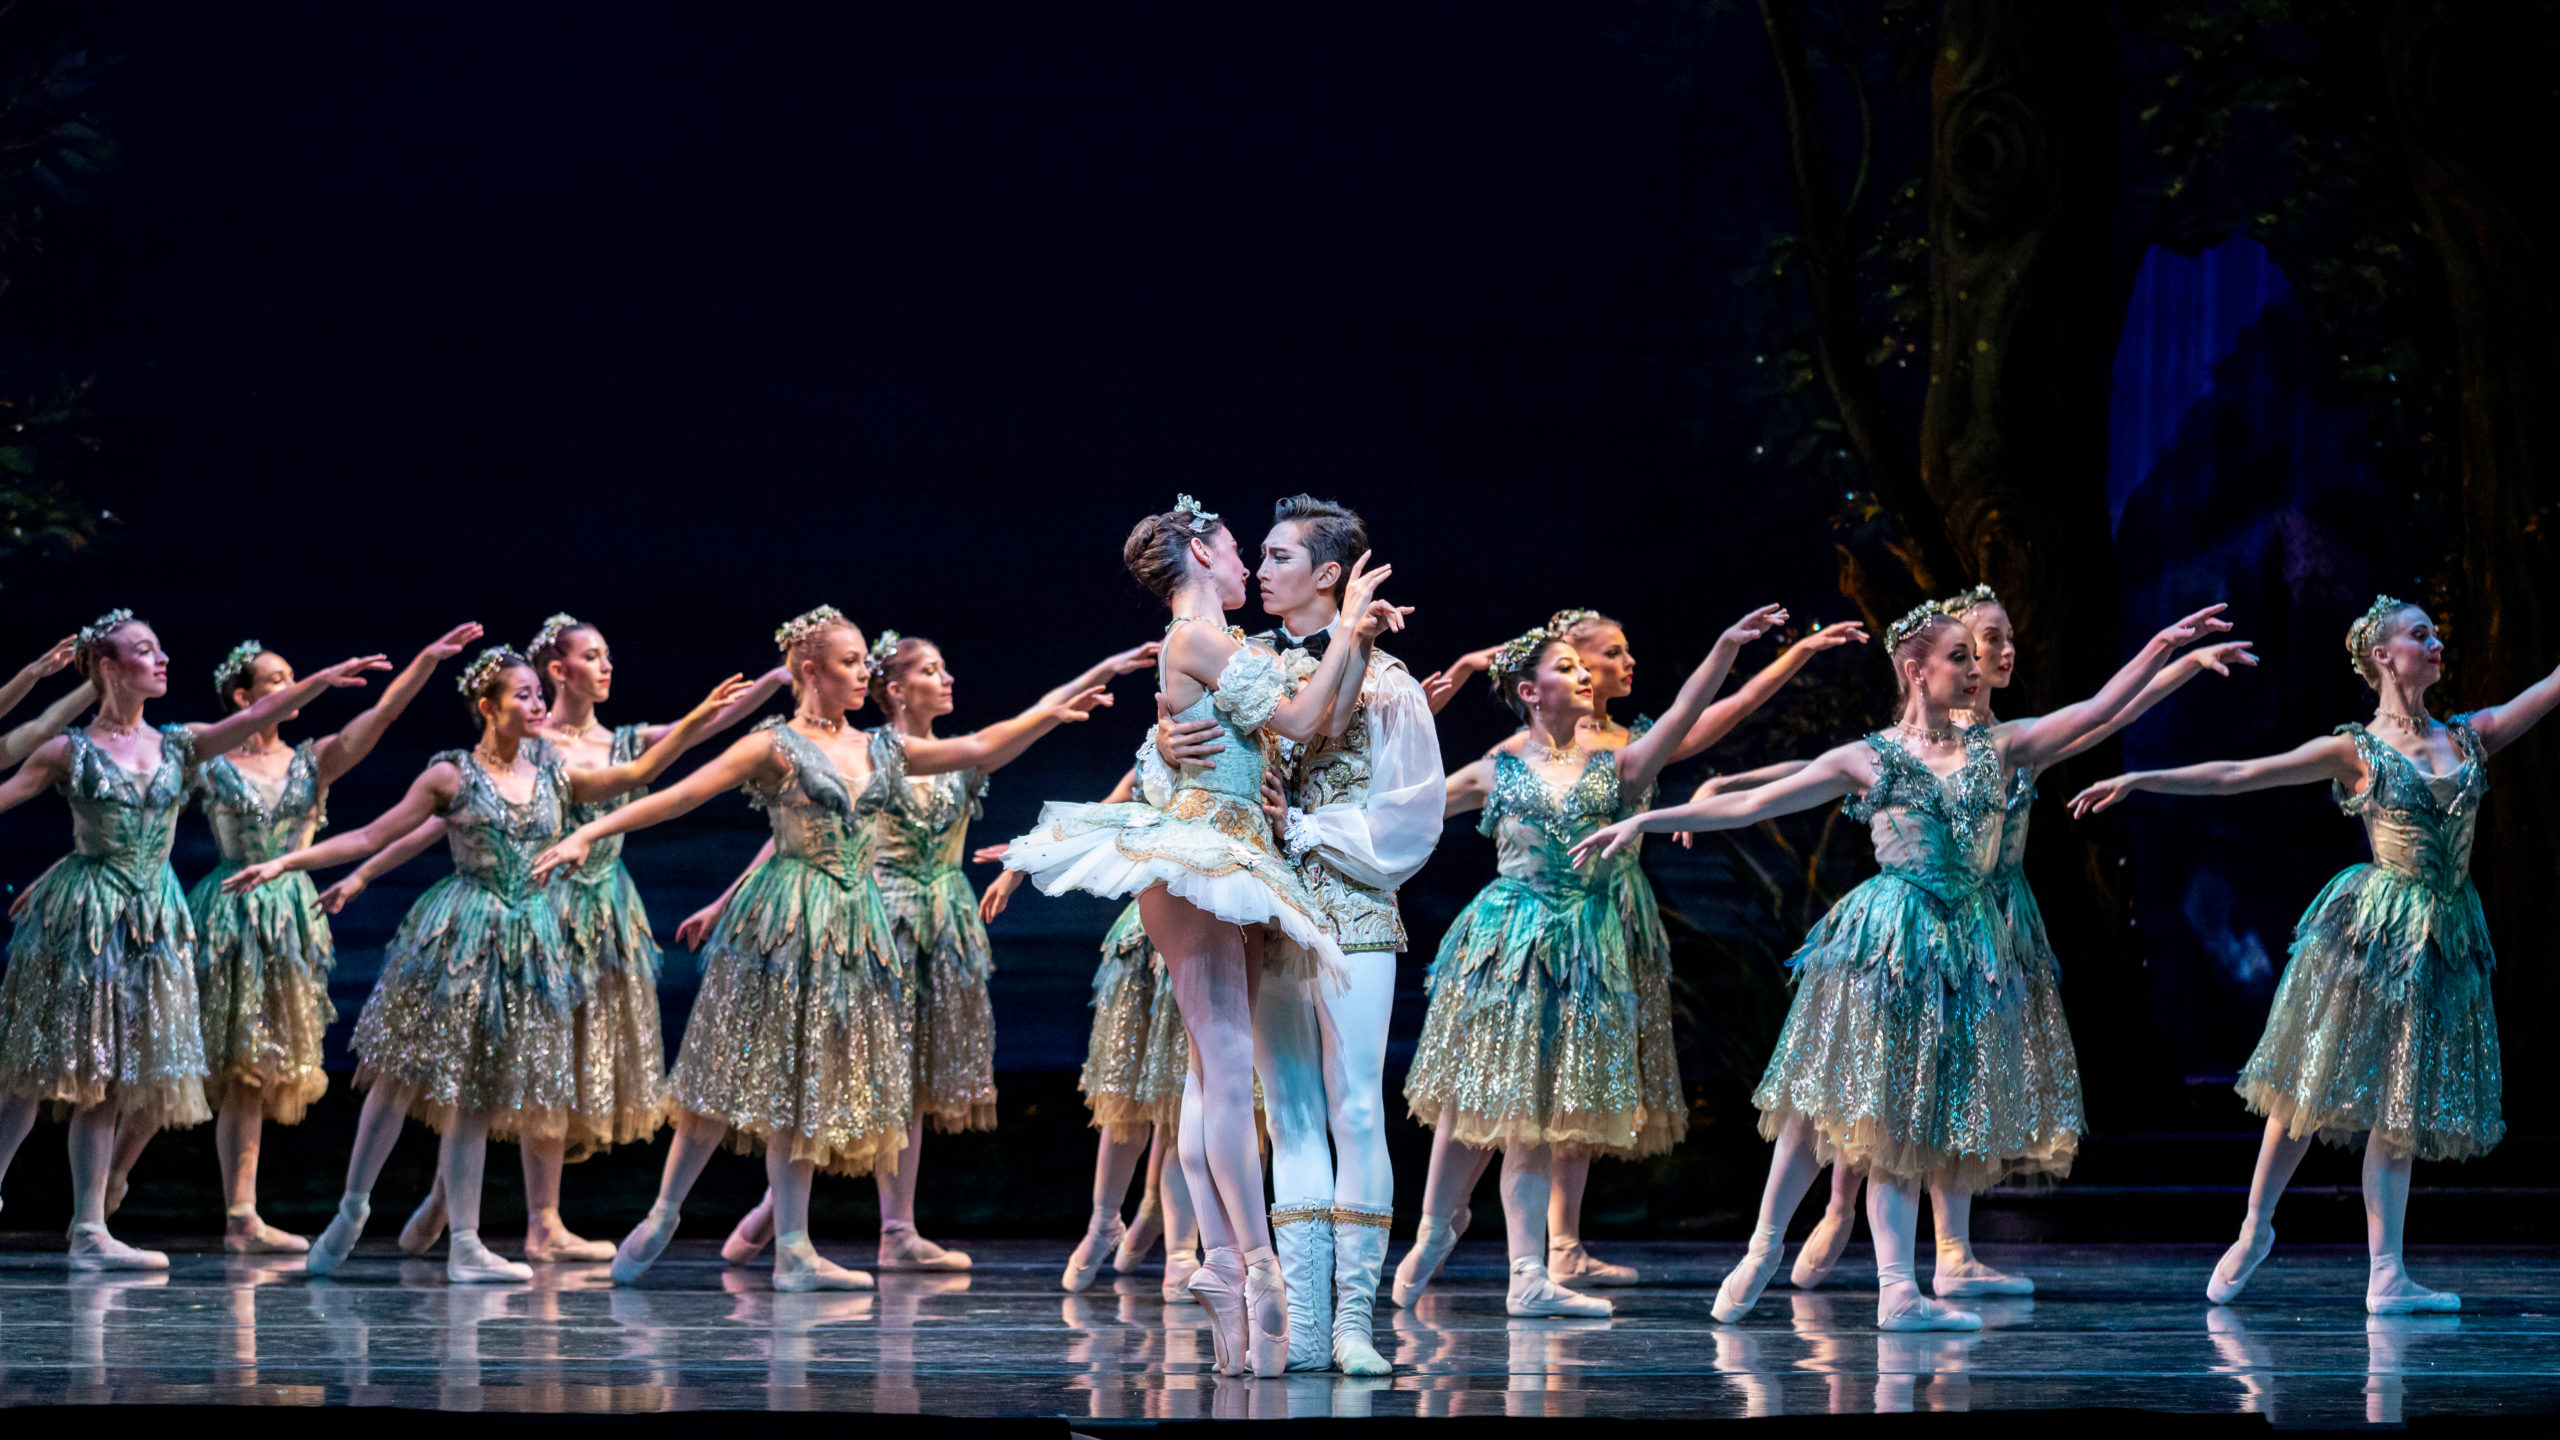 Act 2 of The Sleeping Beauty - corps de ballet dancers in the background in arabesque, with Aurora and Prince partnering in front.